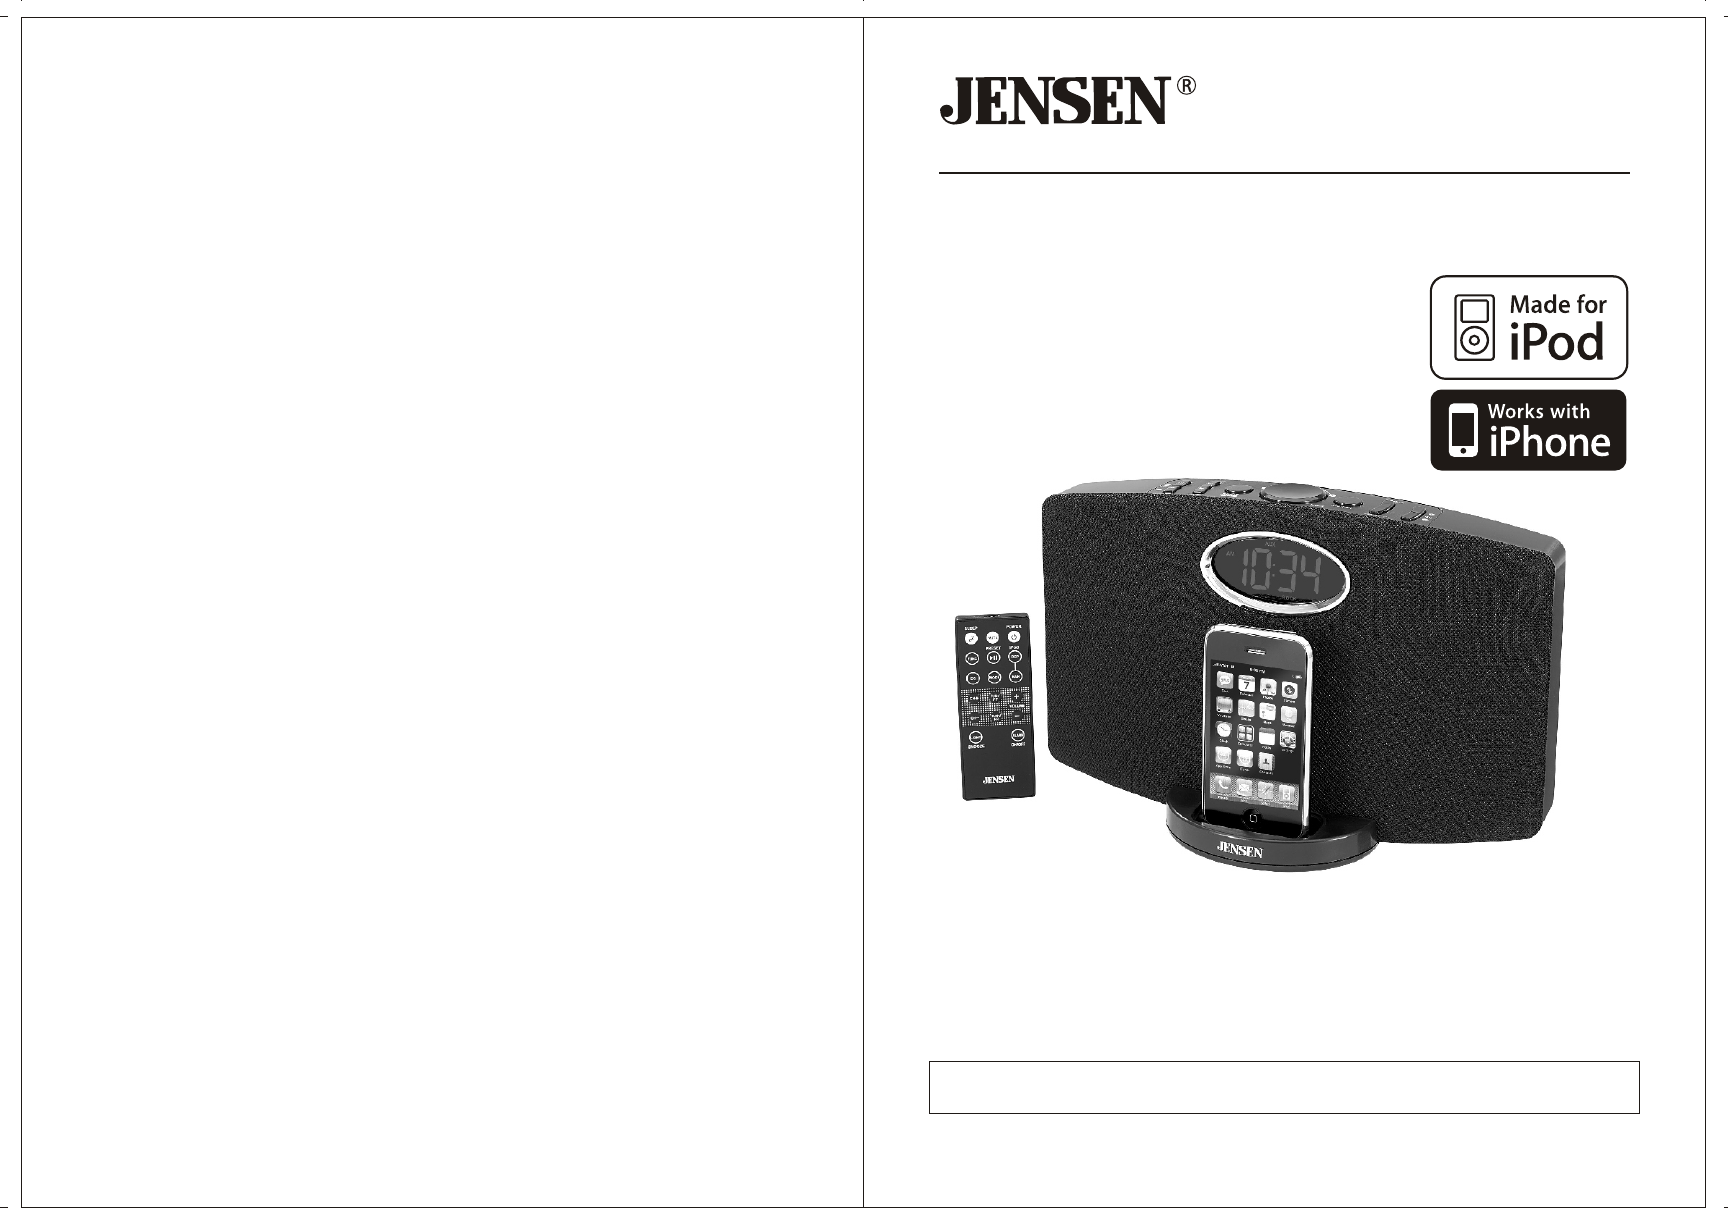 jensen mp3 docking station jims 211i user guide. Black Bedroom Furniture Sets. Home Design Ideas